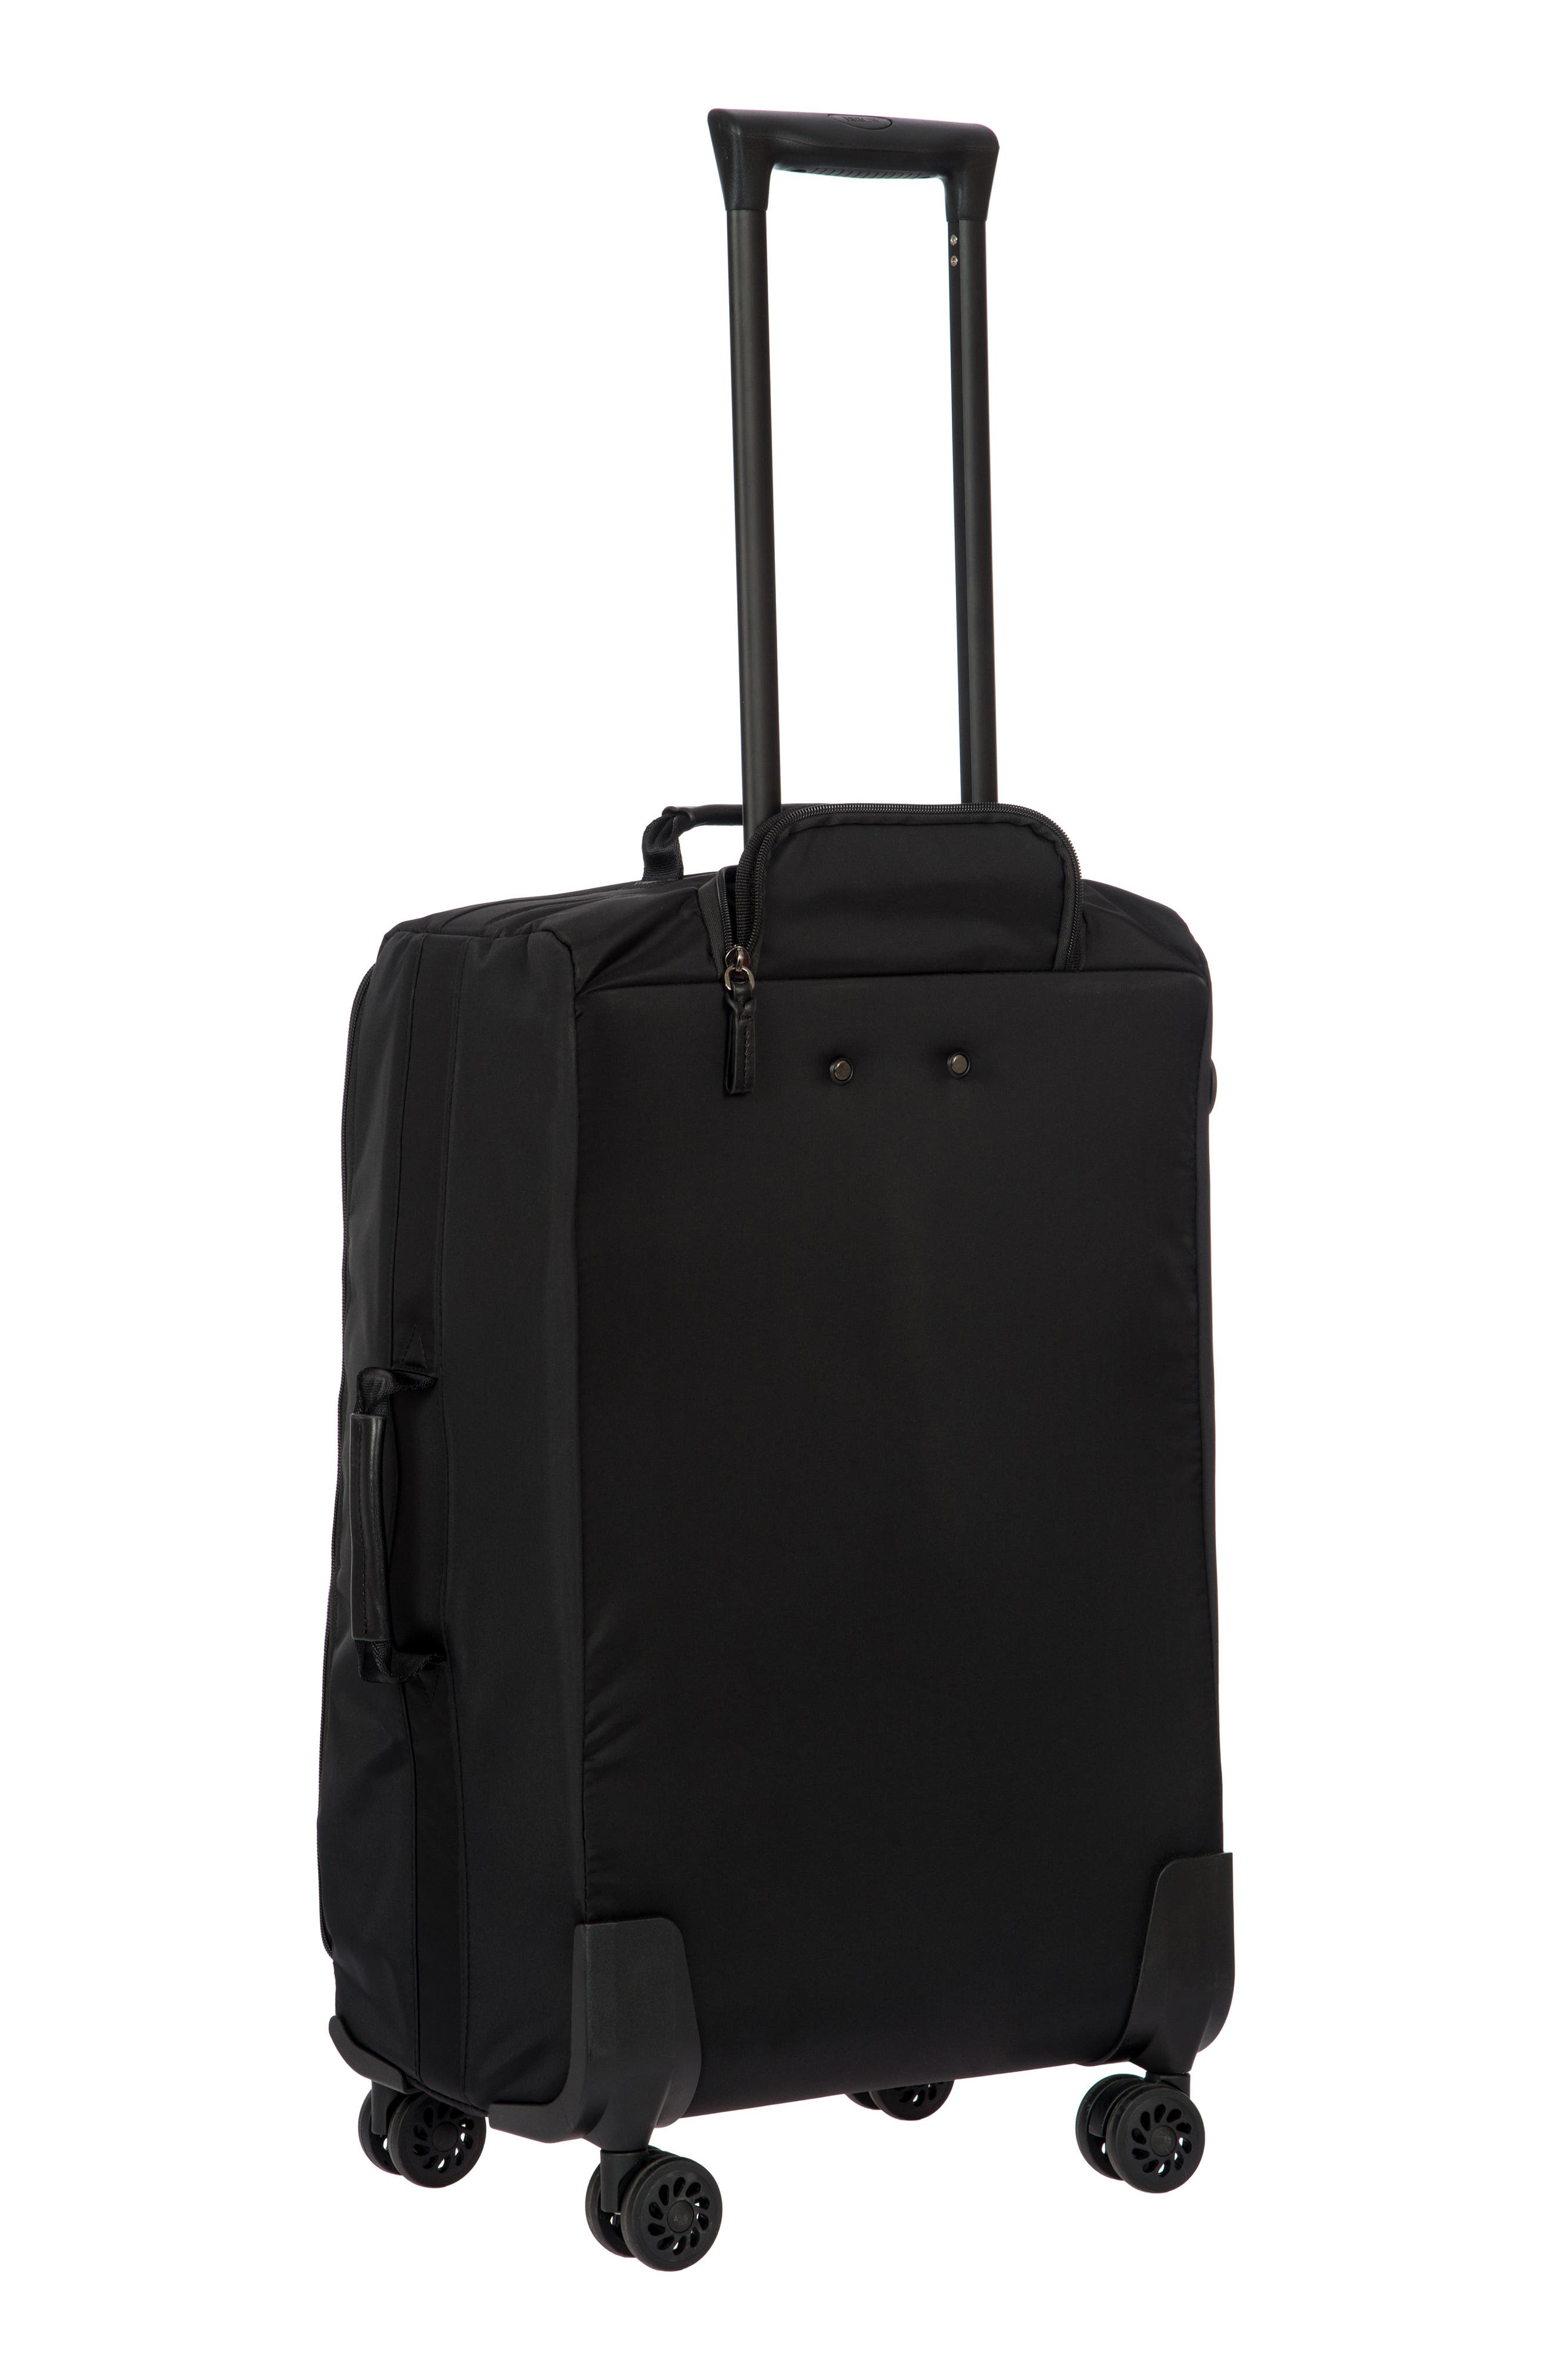 X-Bag 25-Inch Spinner Suitcase,                             Alternate thumbnail 6, color,                             Black/ Black